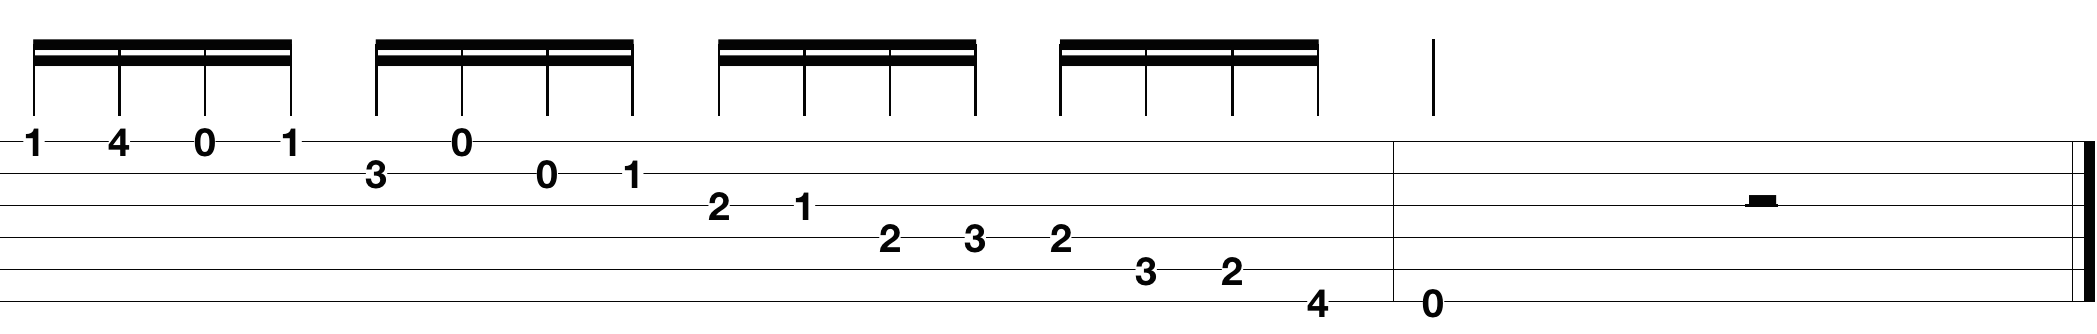 spanish-guitar-licks_3.png